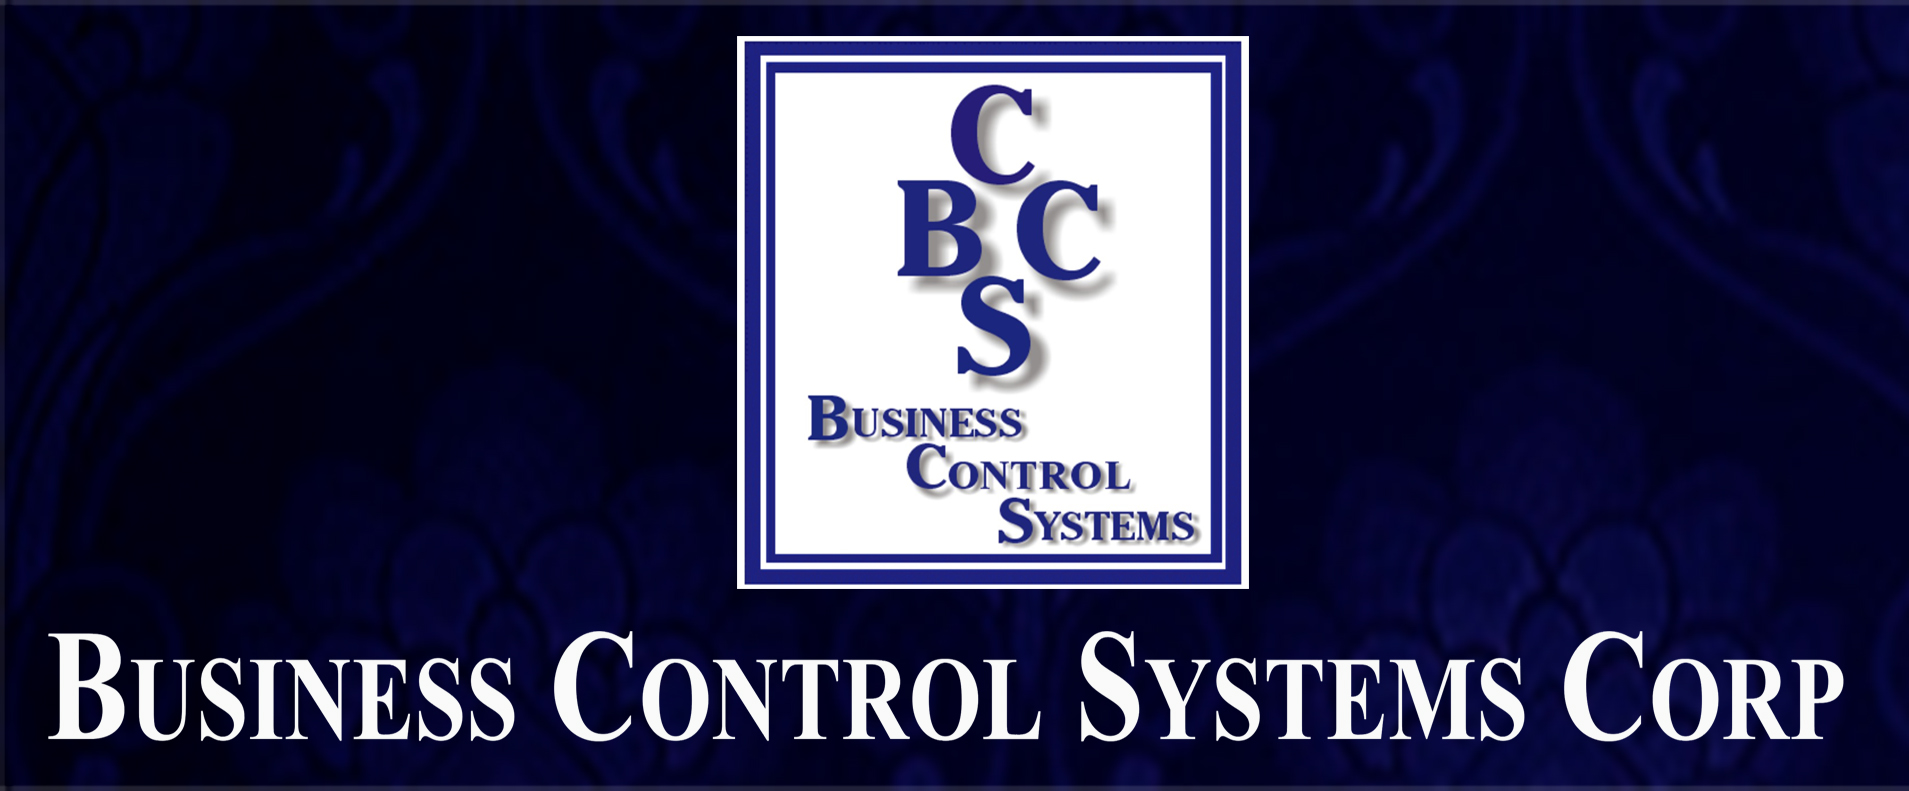 Business Control Systems has complete easy to use point of sale systems, point of sale software and point of sale terminals.